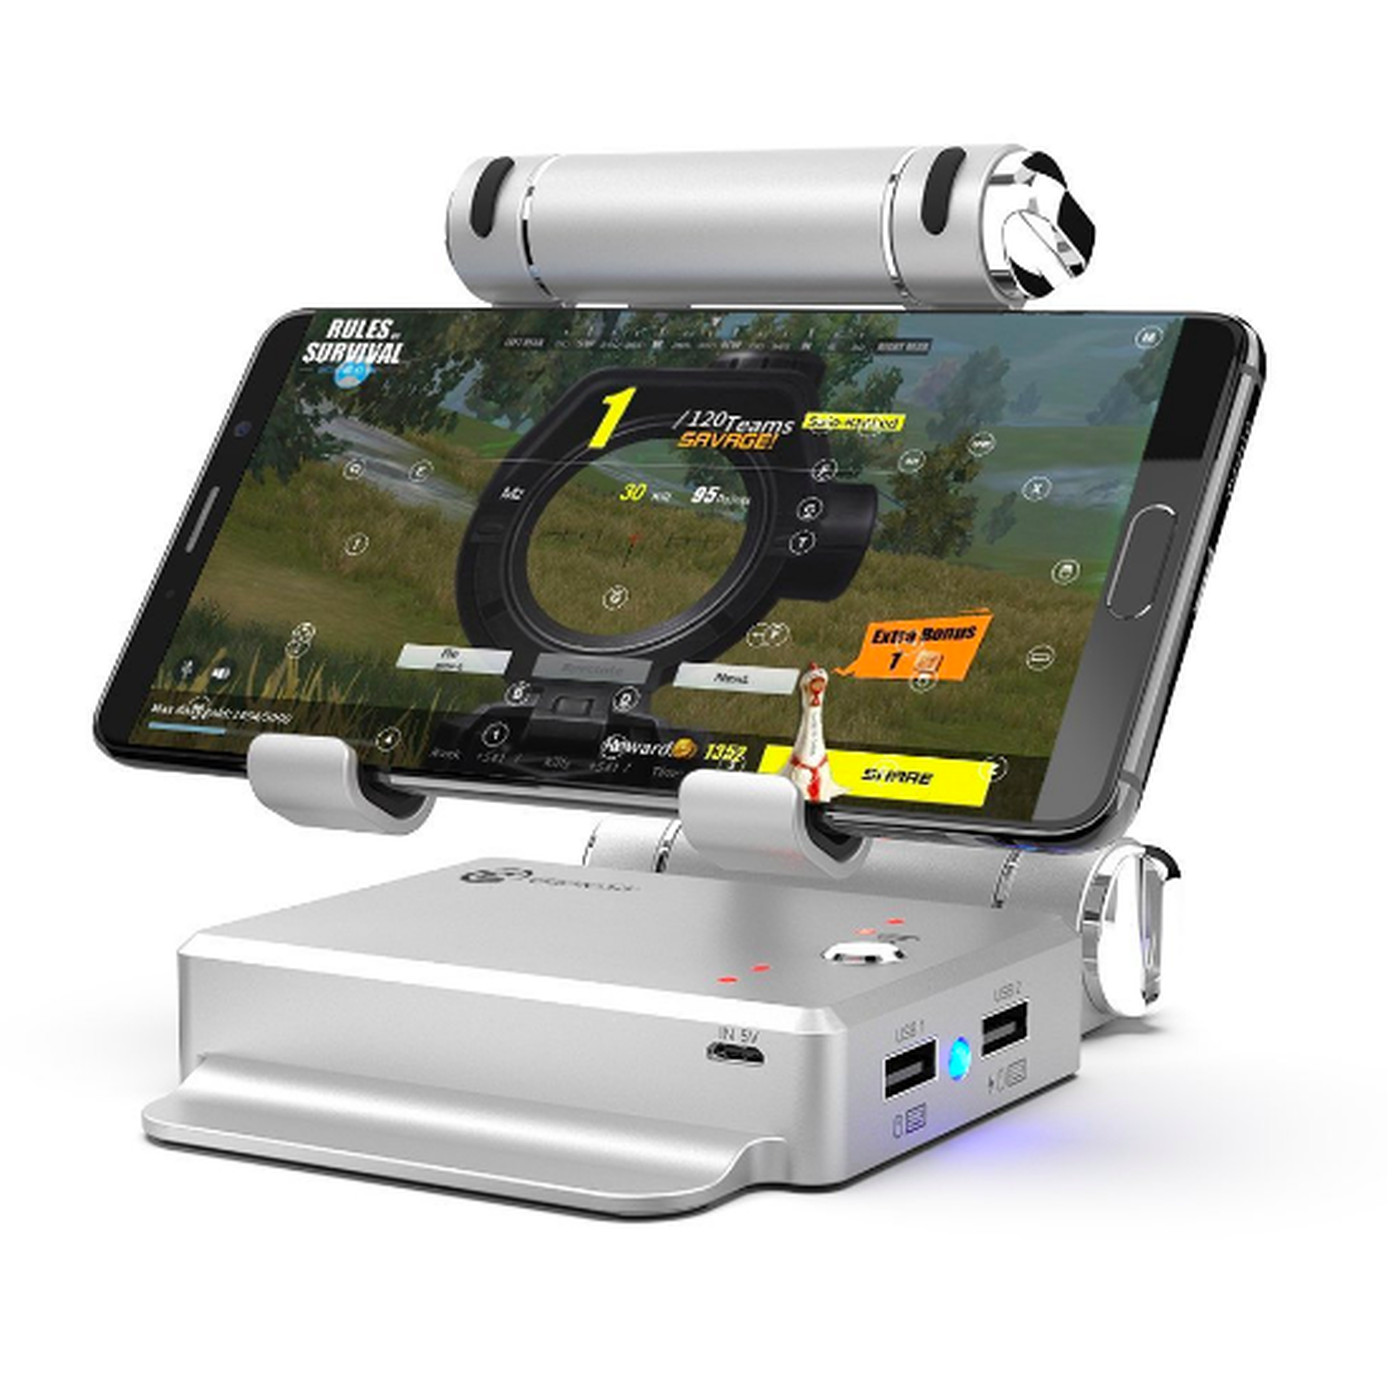 Stick to Fortnite on PC and consoles, this mobile dock isn't